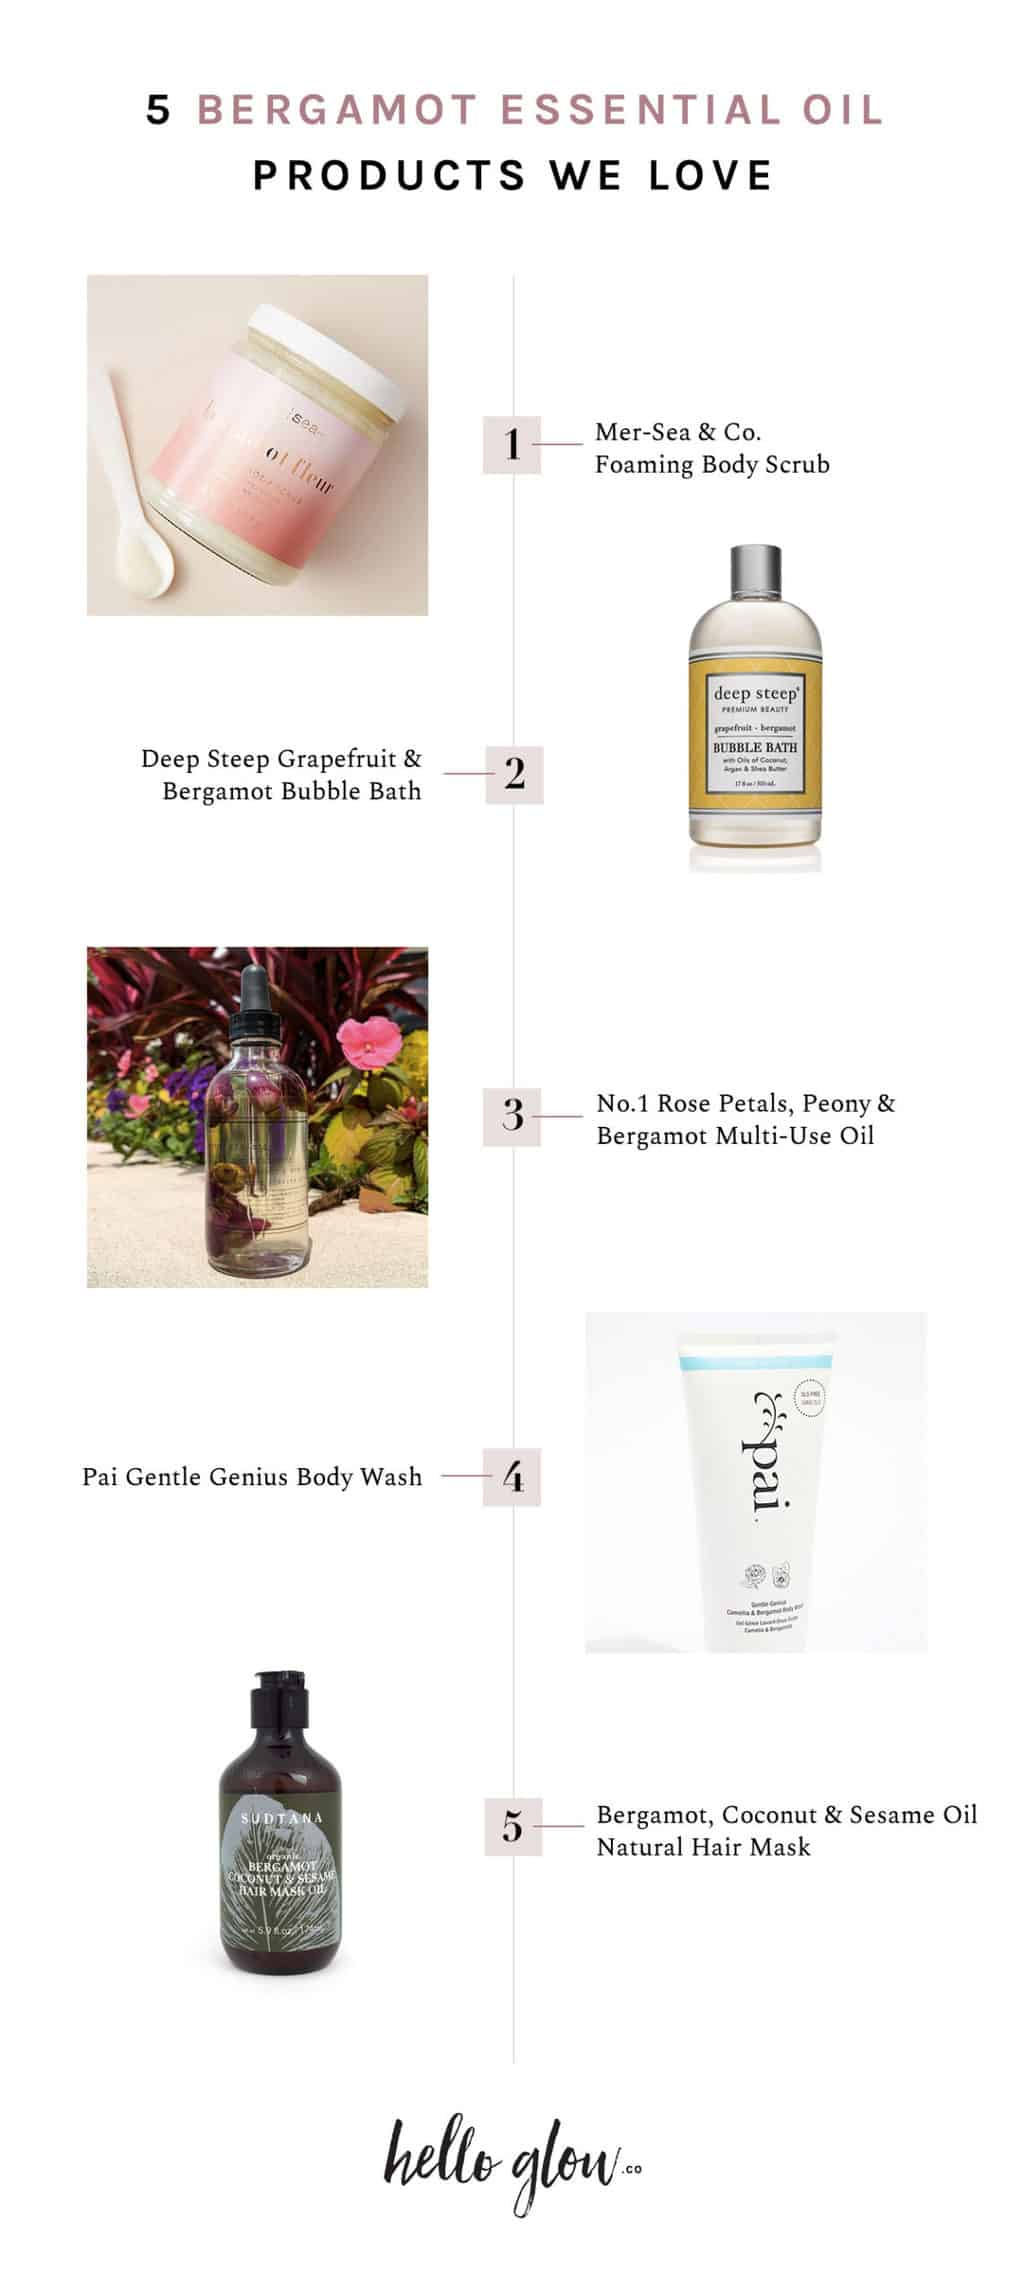 Beauty Uses for Bergamot Essential Oil - 5 Bergamot Beauty Products We Love on HelloGlow.co